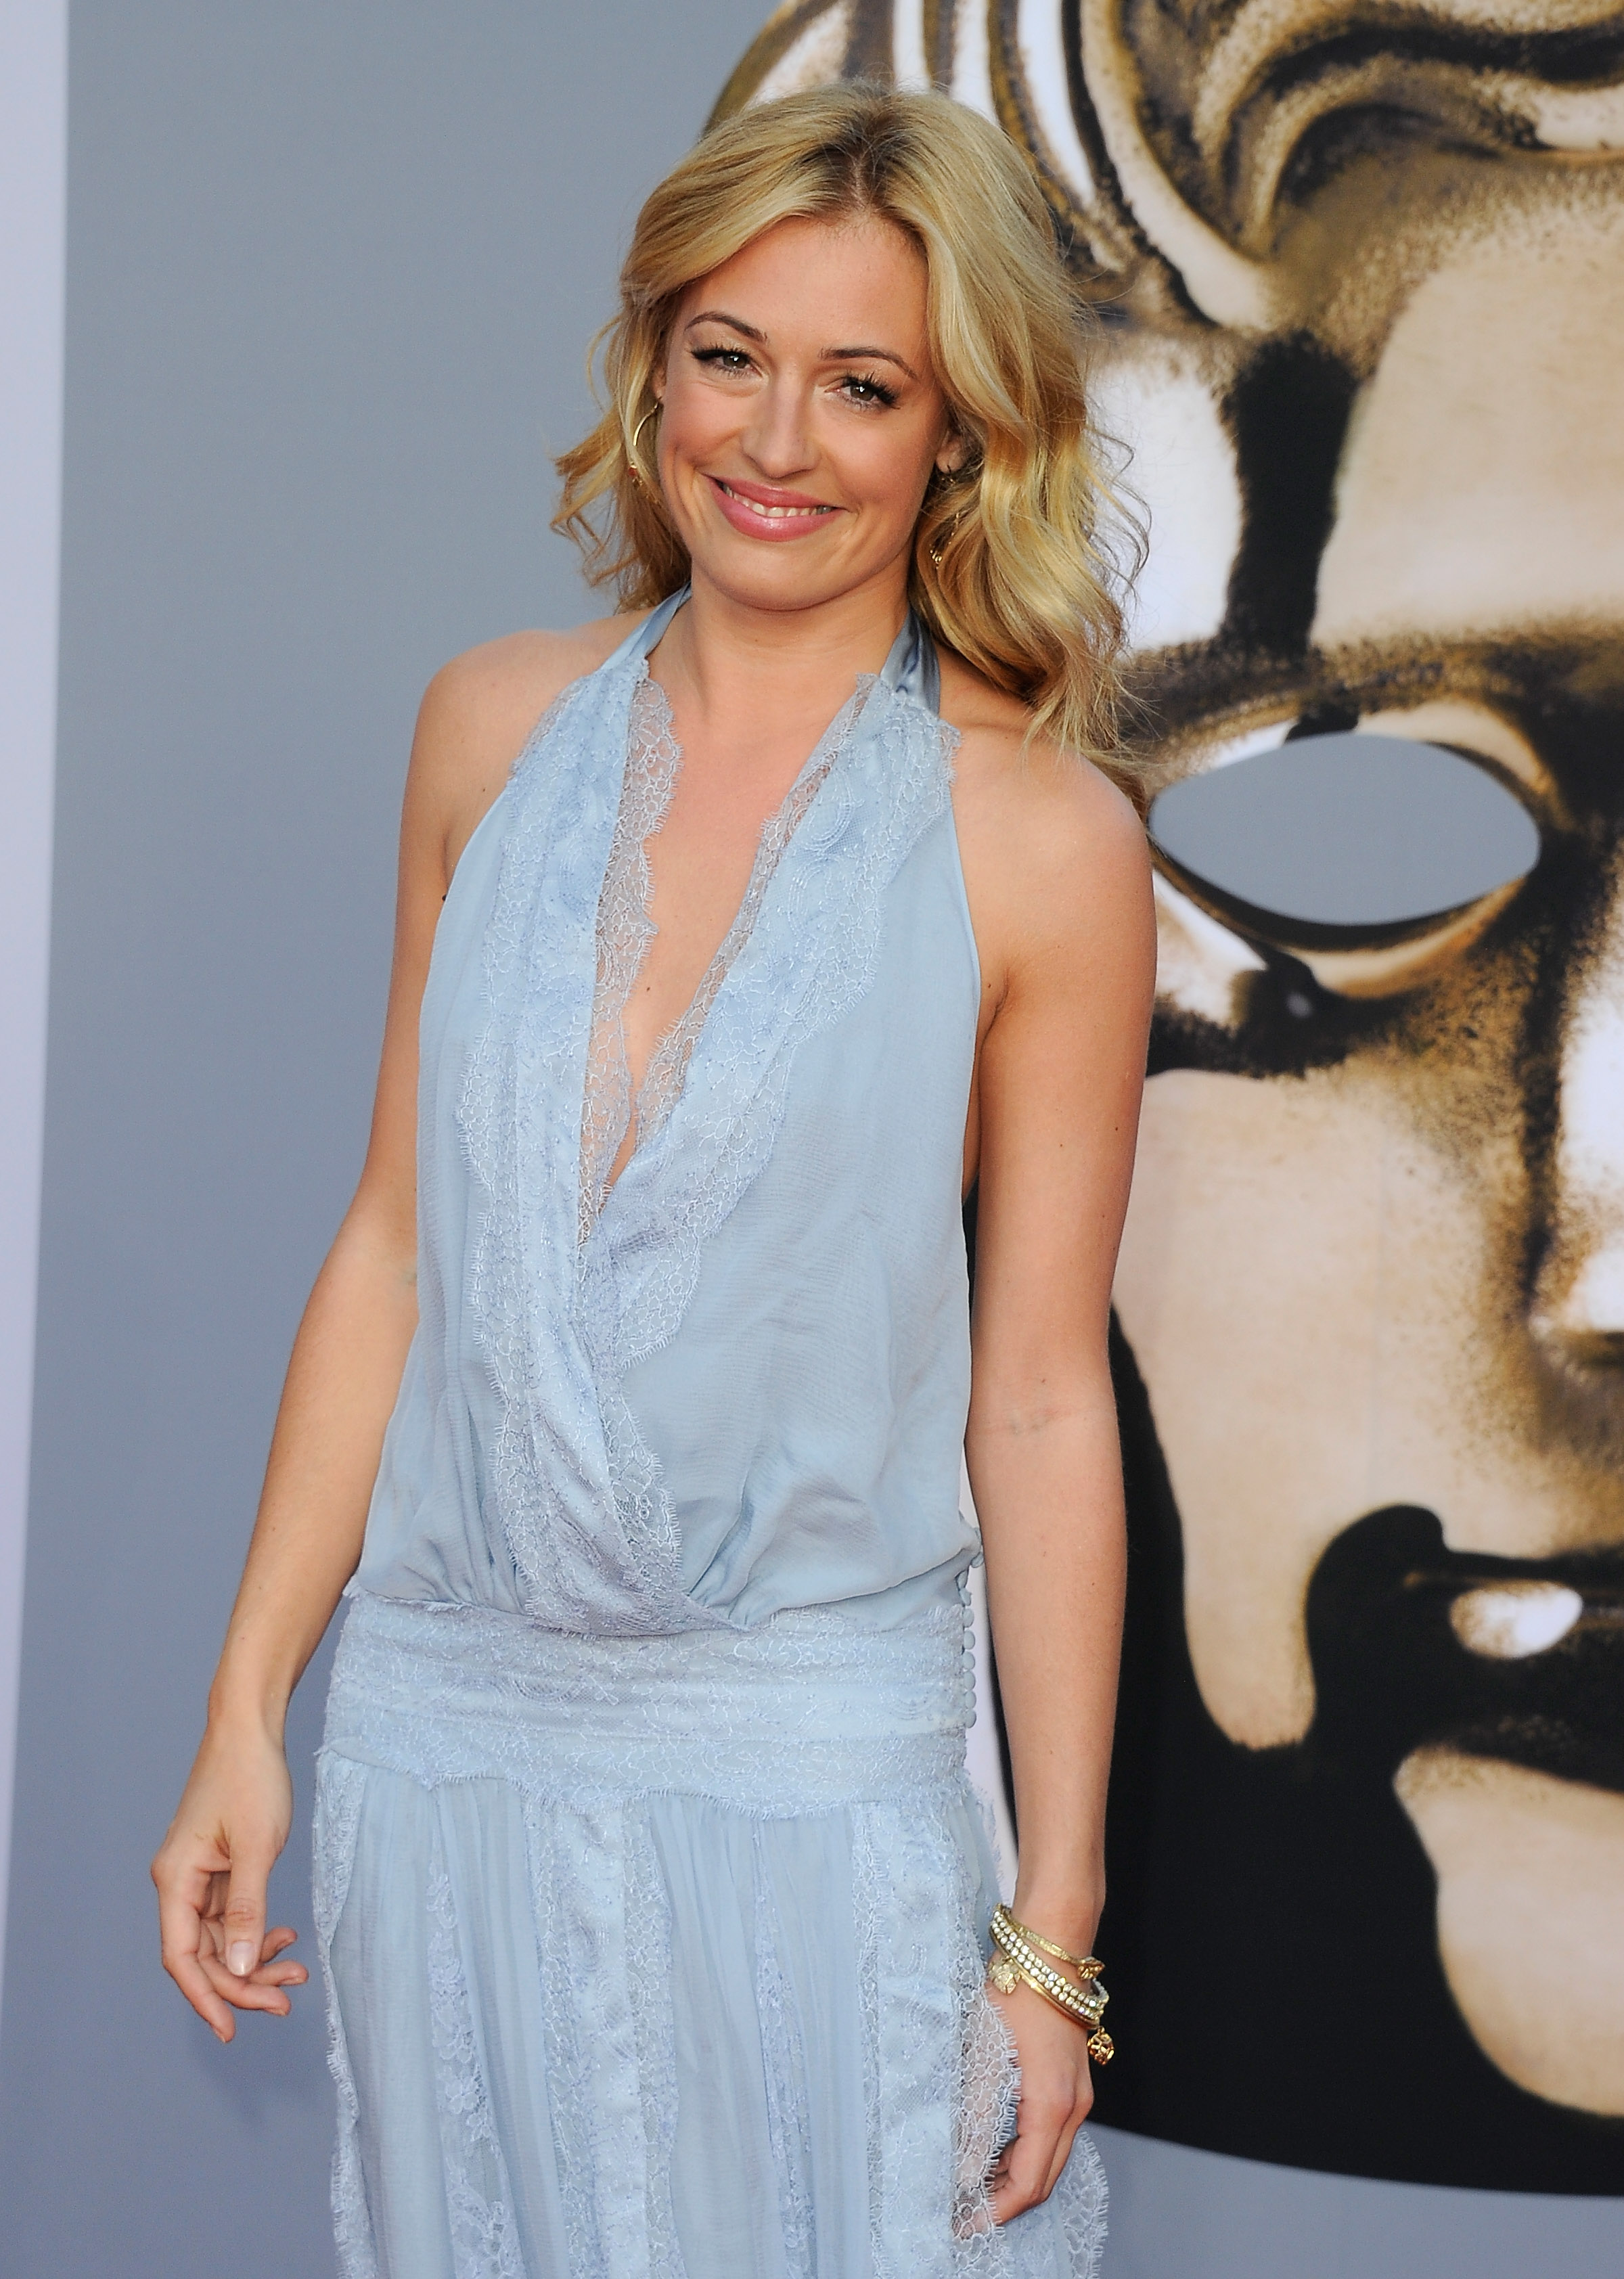 Host Cat Deely at the BAFTA Brits to Watch event in LA.